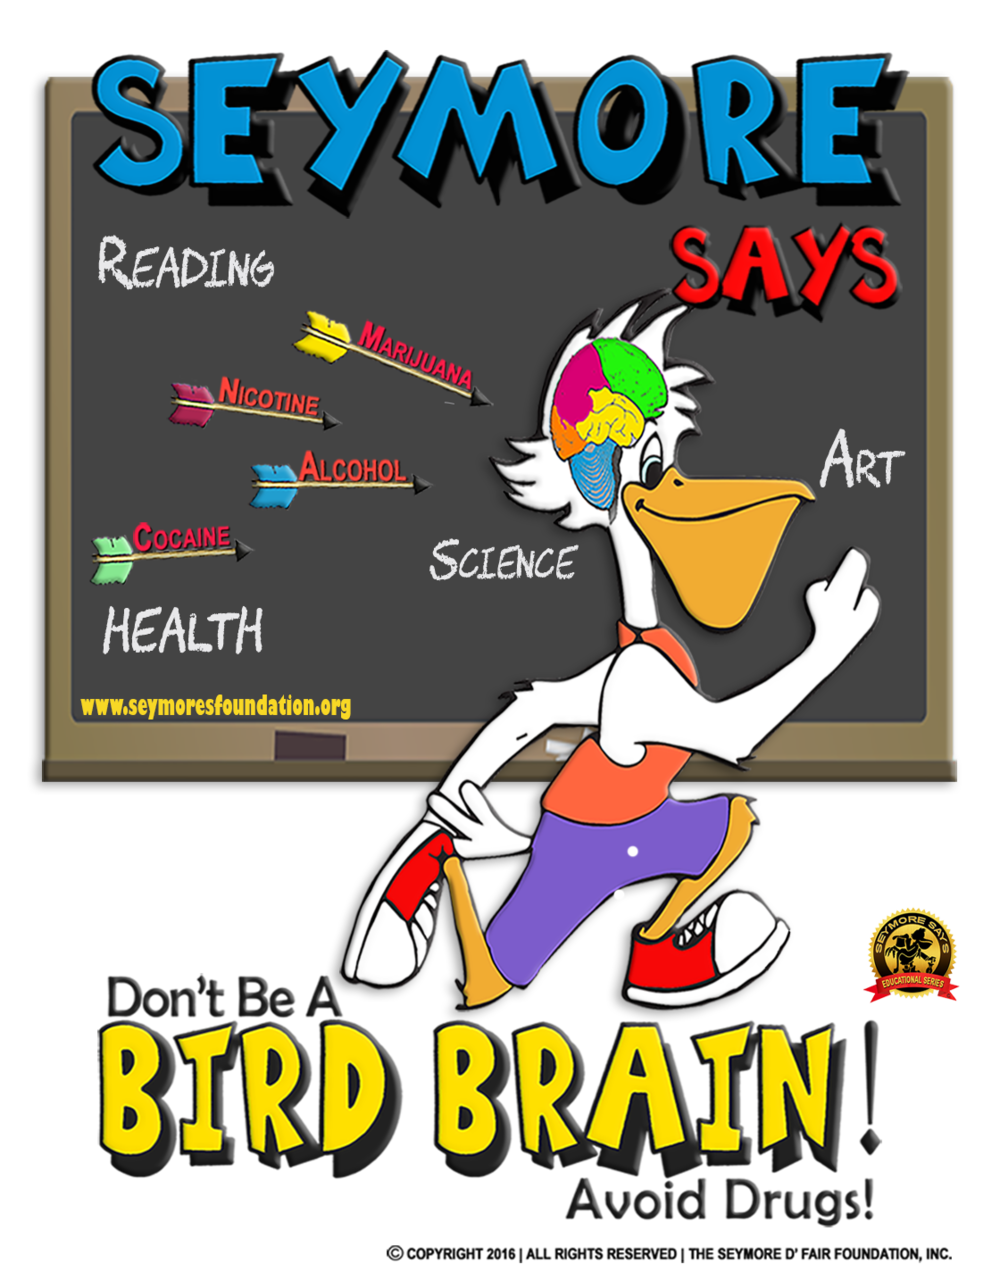 "Seymore Says ""Don't Be a Bird Brain"" Avoid Drug! - Developed in response to increasing data reflecting the prevalence of tobacco, alcohol, and substance exposure among preadolescent youth the Seymore D' Fair Foundation has developed the Seymore Says, ""Don't Be A Bird Brain"" Avoid Drugs! Program.Scheduled for release during the 2019/2020 school year, this exciting new drug education curriculum is developed by 'educators for students' illuminates the human brain and the effects of medicine and drug use and misuse. The program combines hands-on classroom activities, pre and post assessments and take-home components creating an imaginative and comprehensive learning experience for students while advancing parental and community engagement.Education Programs .. learn more"